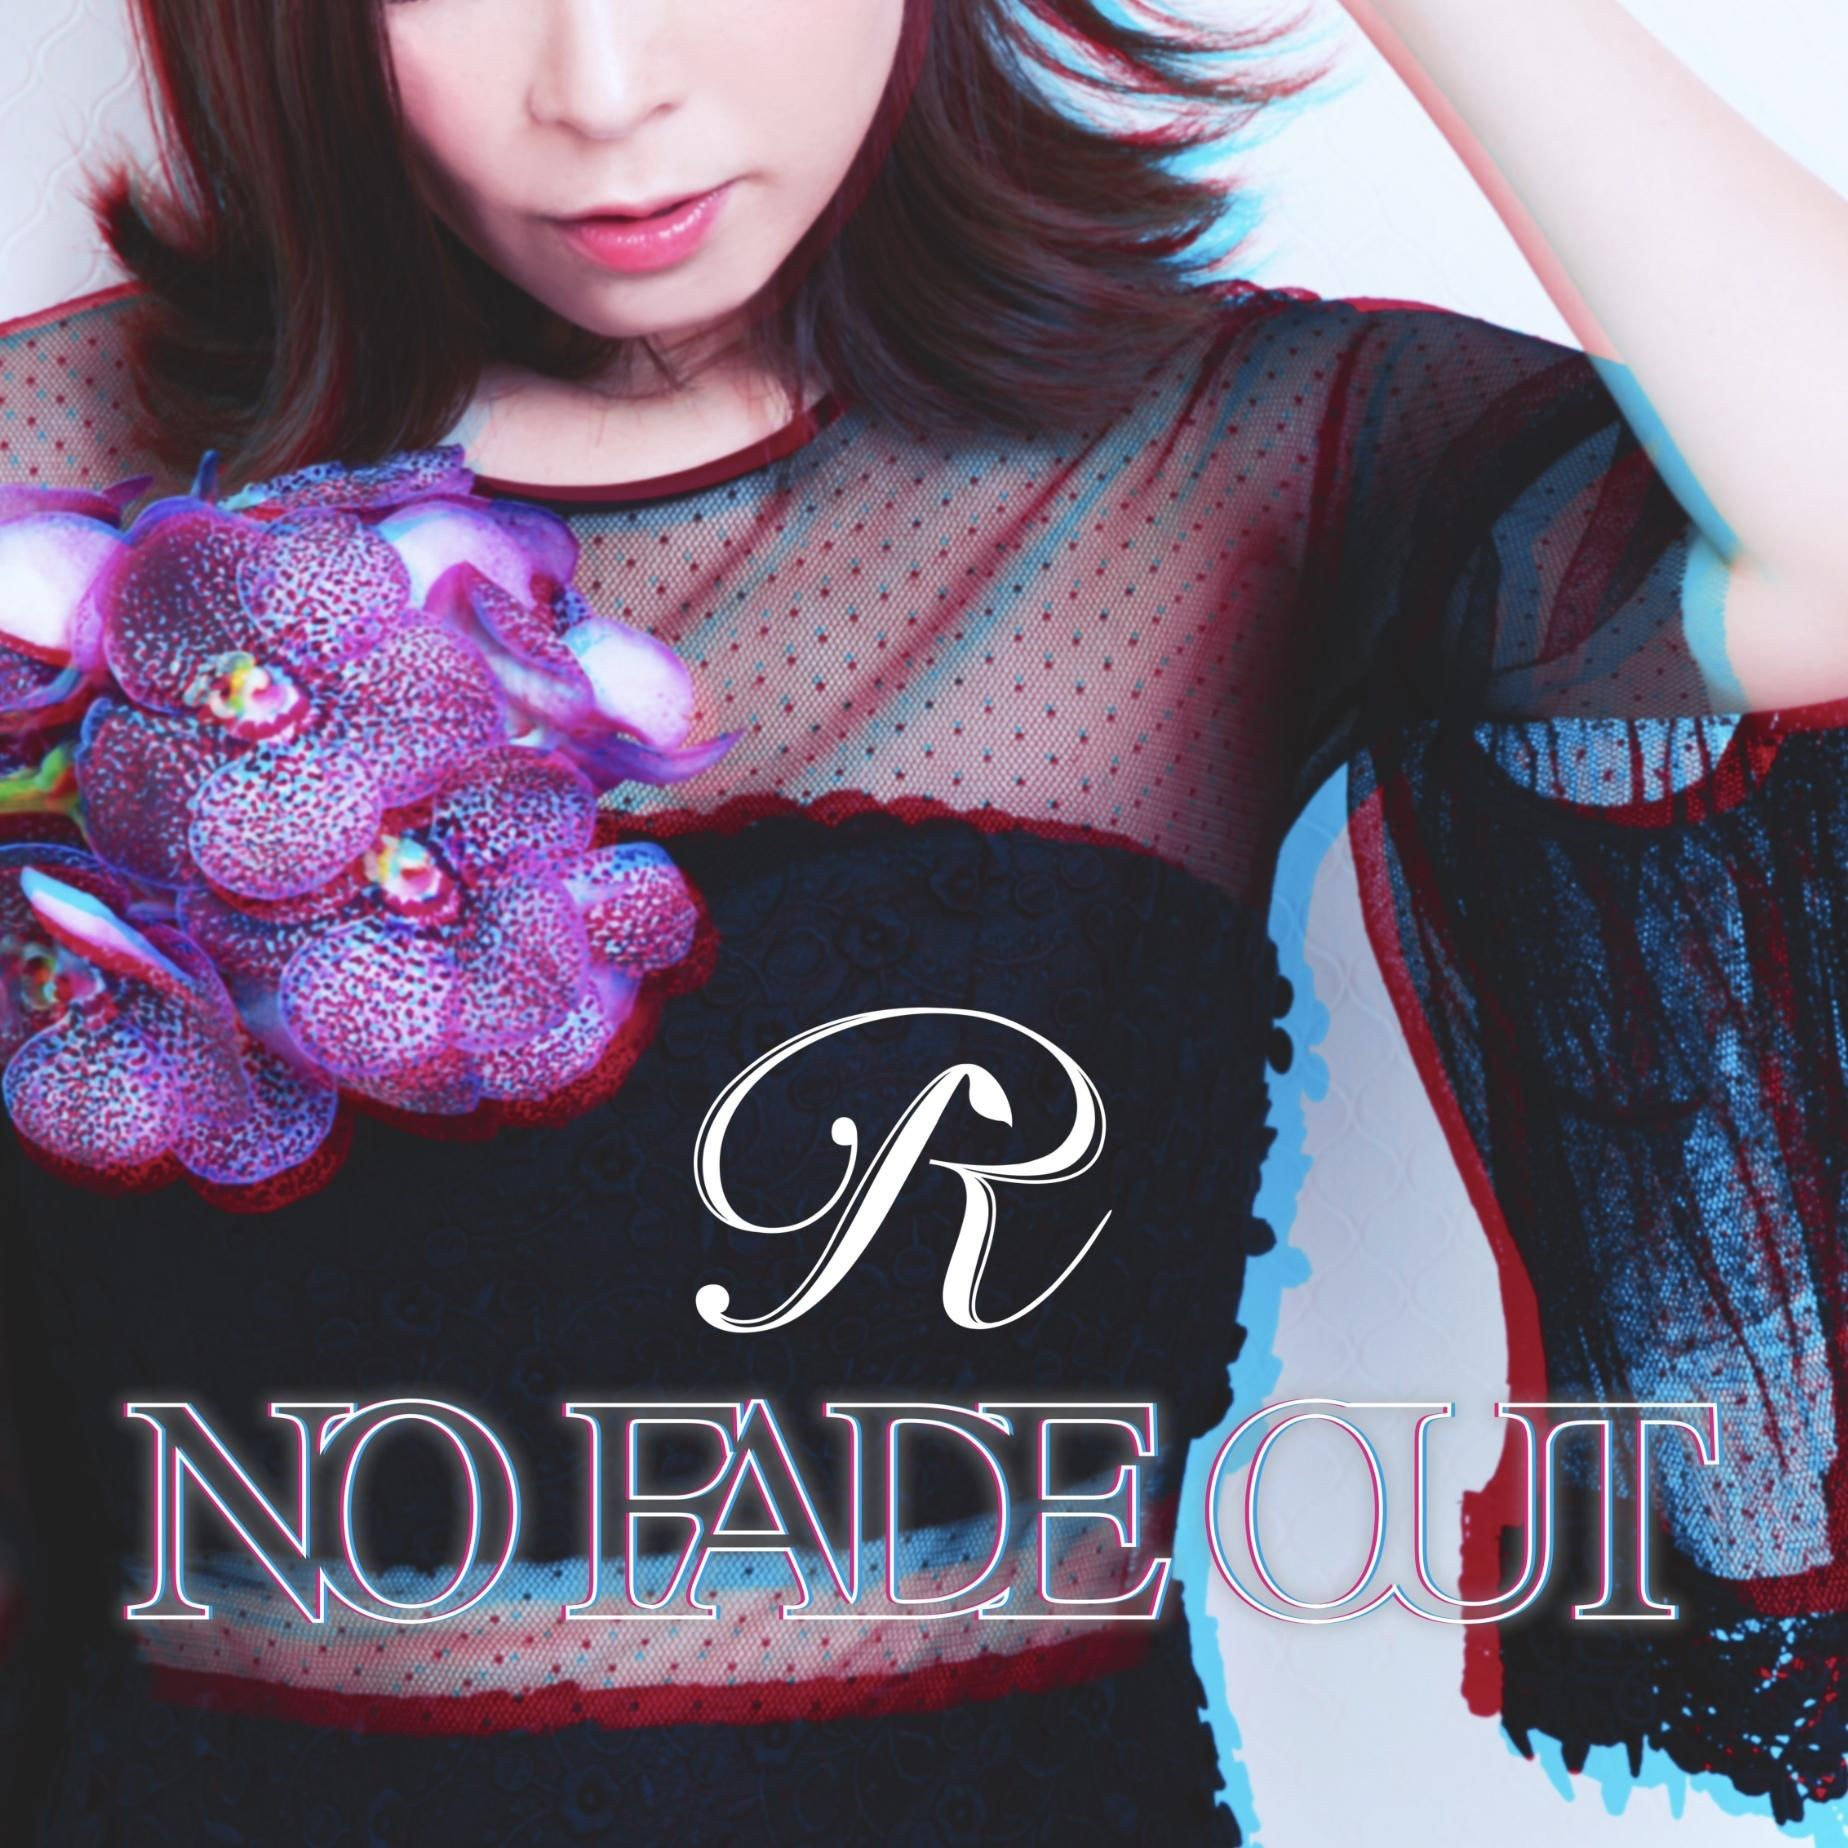 愛内里菜 (Rina Aiuchi) – NO FADE OUT [FLAC / 24bit Lossless / WEB] [2018.11.08]